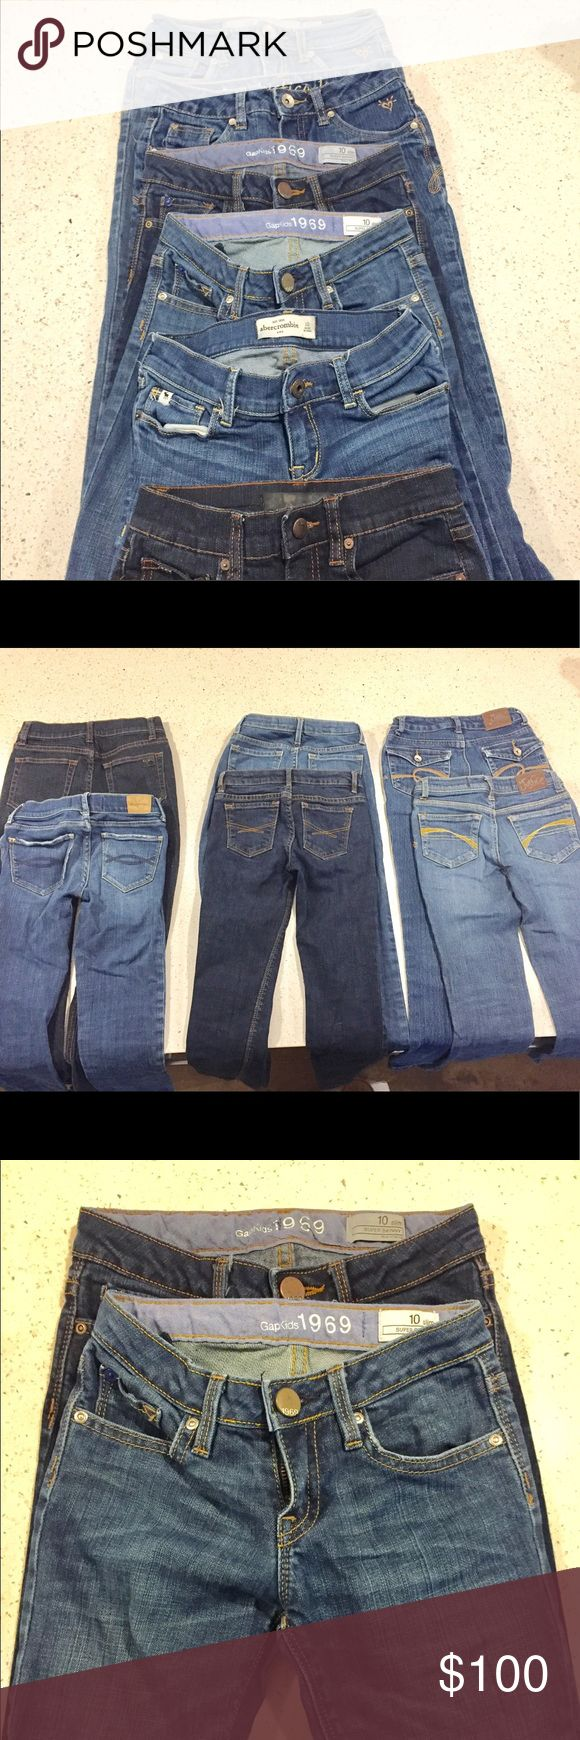 Lot 7 pairs of jeans Abercrombie Gap Joe's Zara Barely worn girl's skinny jeans all girls size 10. 2 Gap, 2 Justice, 1 Abercrombie, 1 Joe's Jenas, 1 Zara. Light to dark wash.  If you want to make an offer on just one pair or a couple please make a comment. abercrombie kids Jeans Skinny